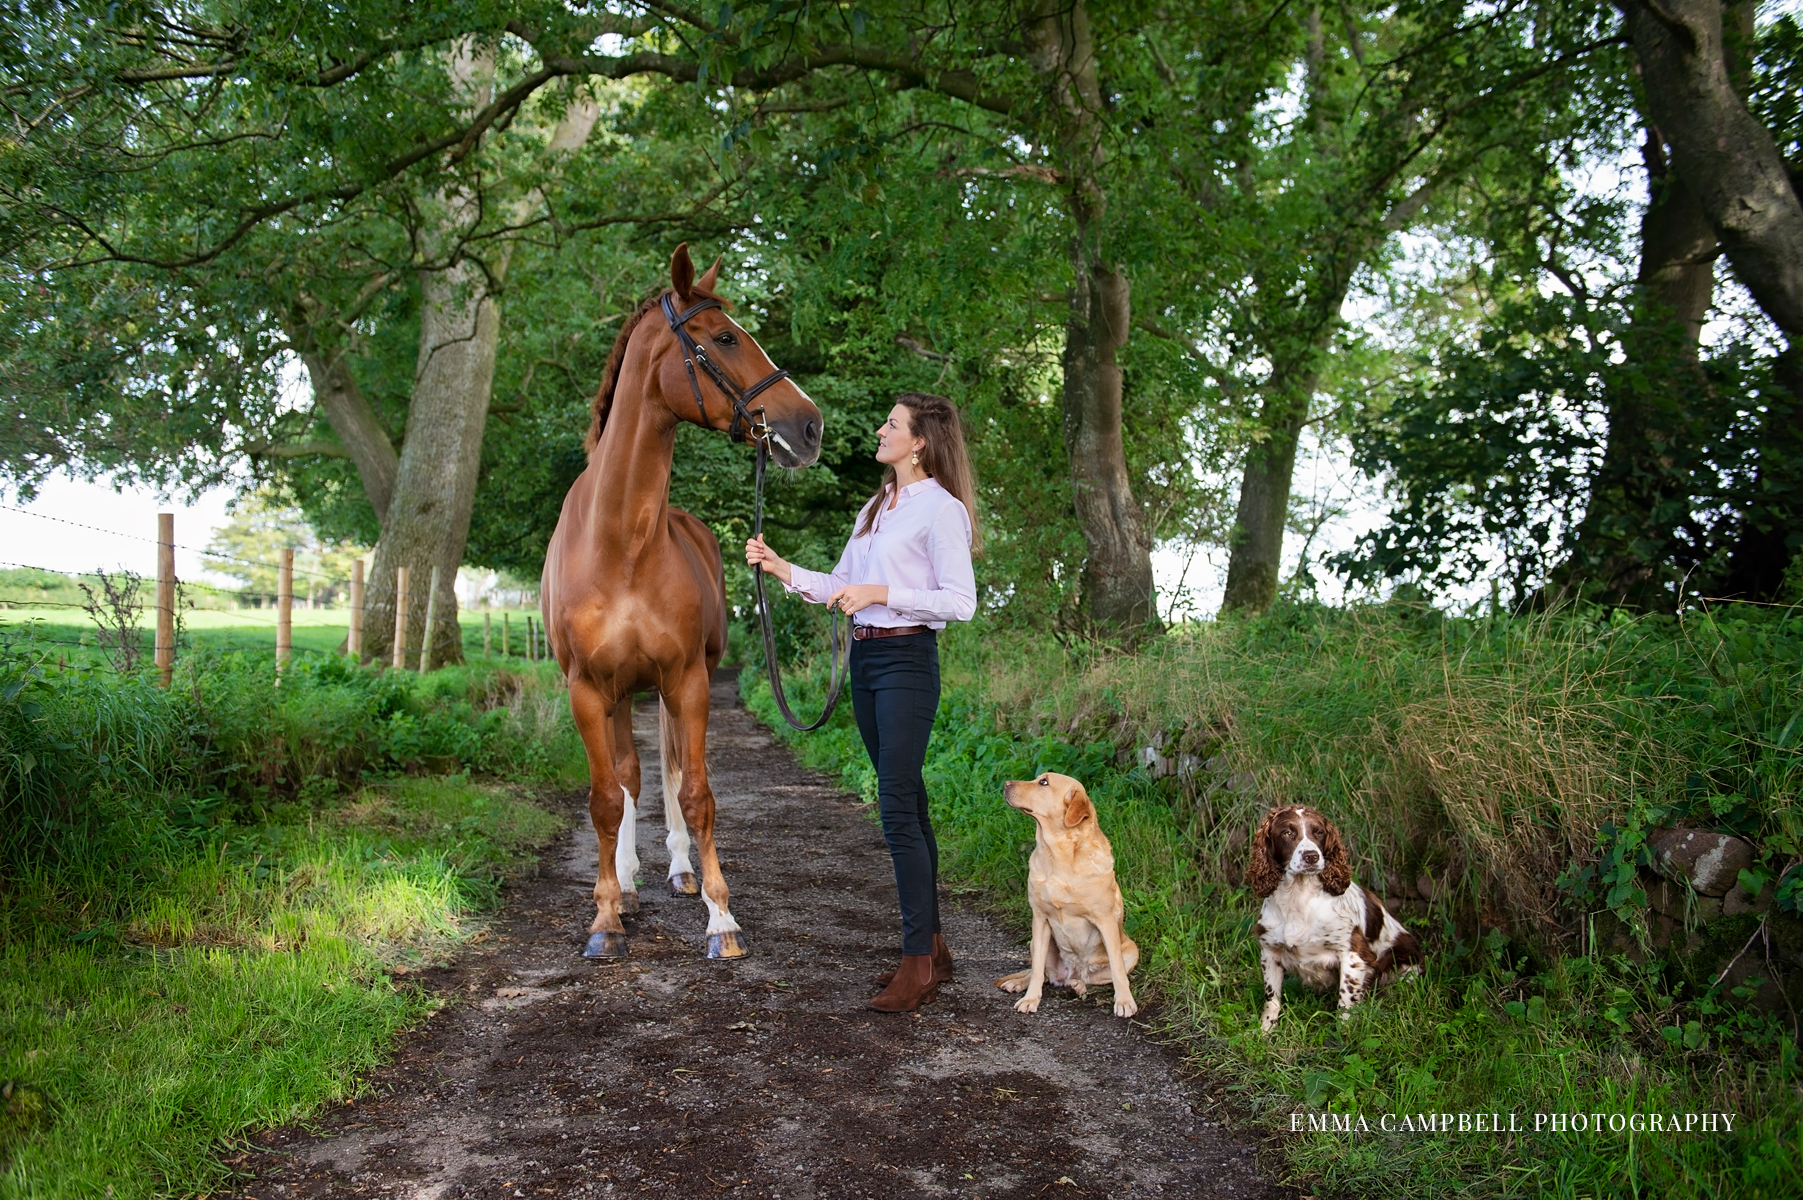 Equestrian photoshoot with dogs